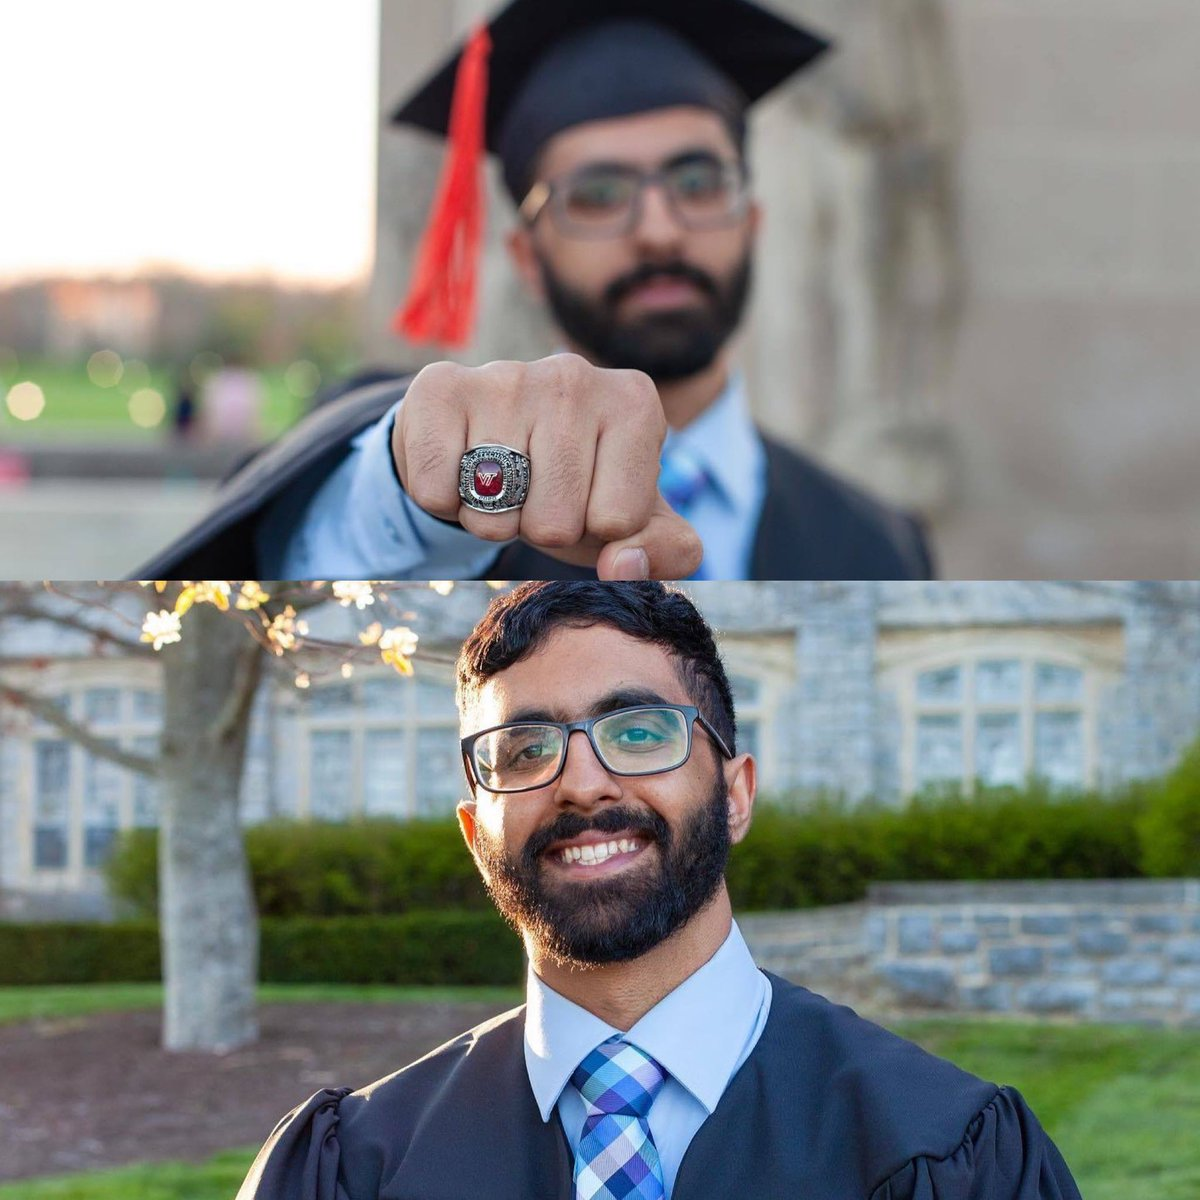 VT First-Gen Graduate Spotlight:  Today, @vt1stgen celebrates Senior Ahmad Ayub, a Computer Science major, on his graduation! We are very proud of you, Ahmad! Congratulations on your exciting next chapter! 🎉🎉 #VTFirstGenGraduate #CelebrateFirstGen